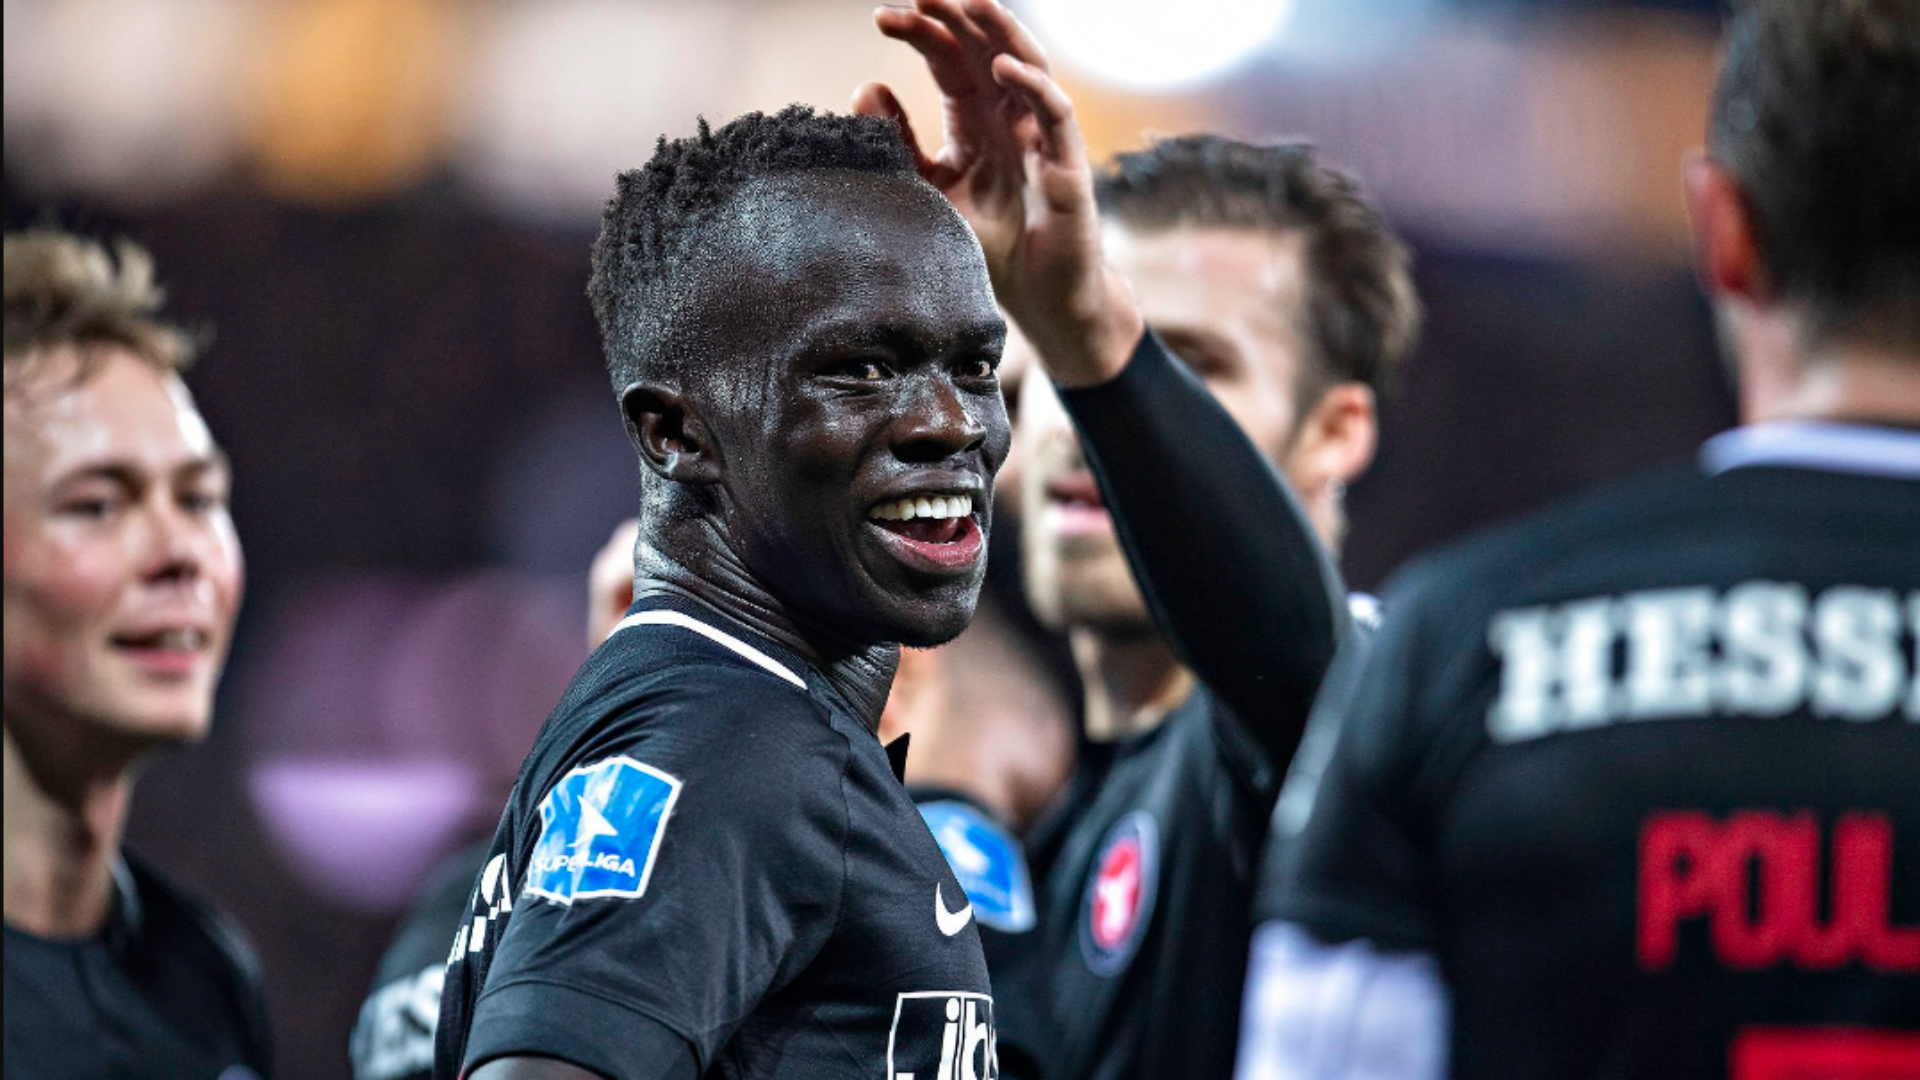 A-League and Australian football news LIVE: Mabil scores birthday goal in Midtjylland win